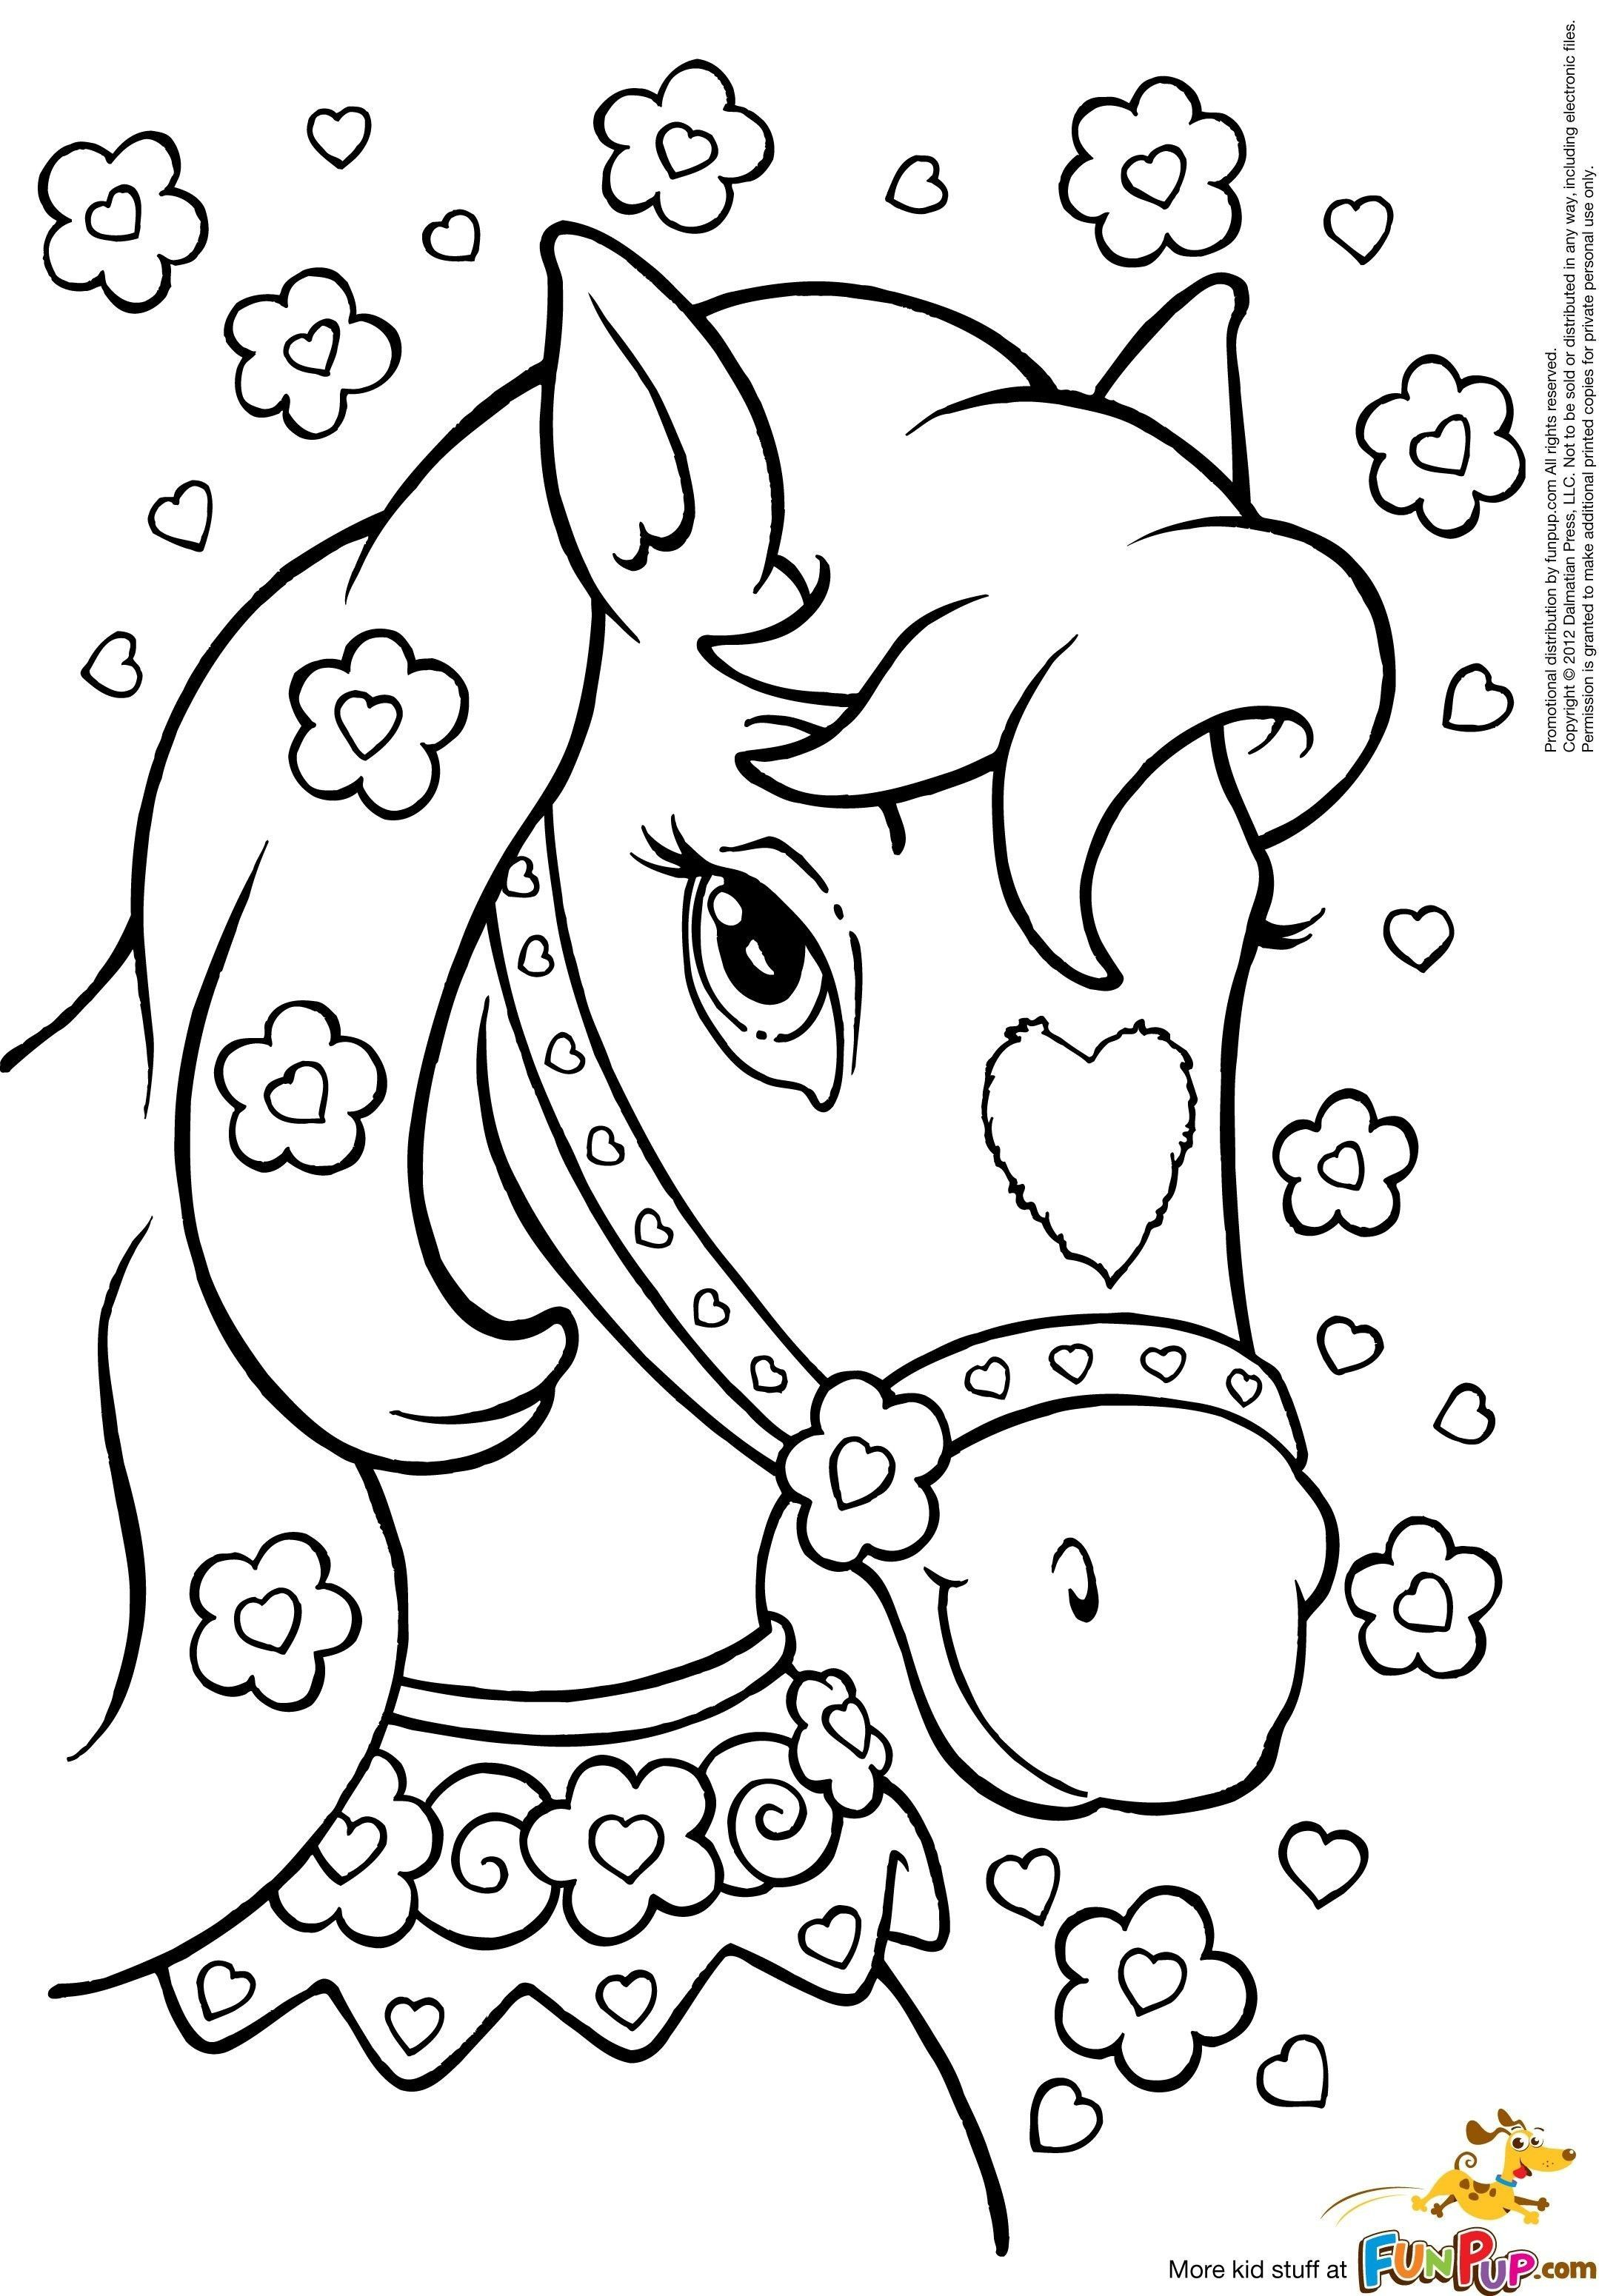 27 Amazing Image Of Coloring Pages Horses Entitlementtrap Com Unicorn Coloring Pages Disney Princess Coloring Pages Kids Printable Coloring Pages